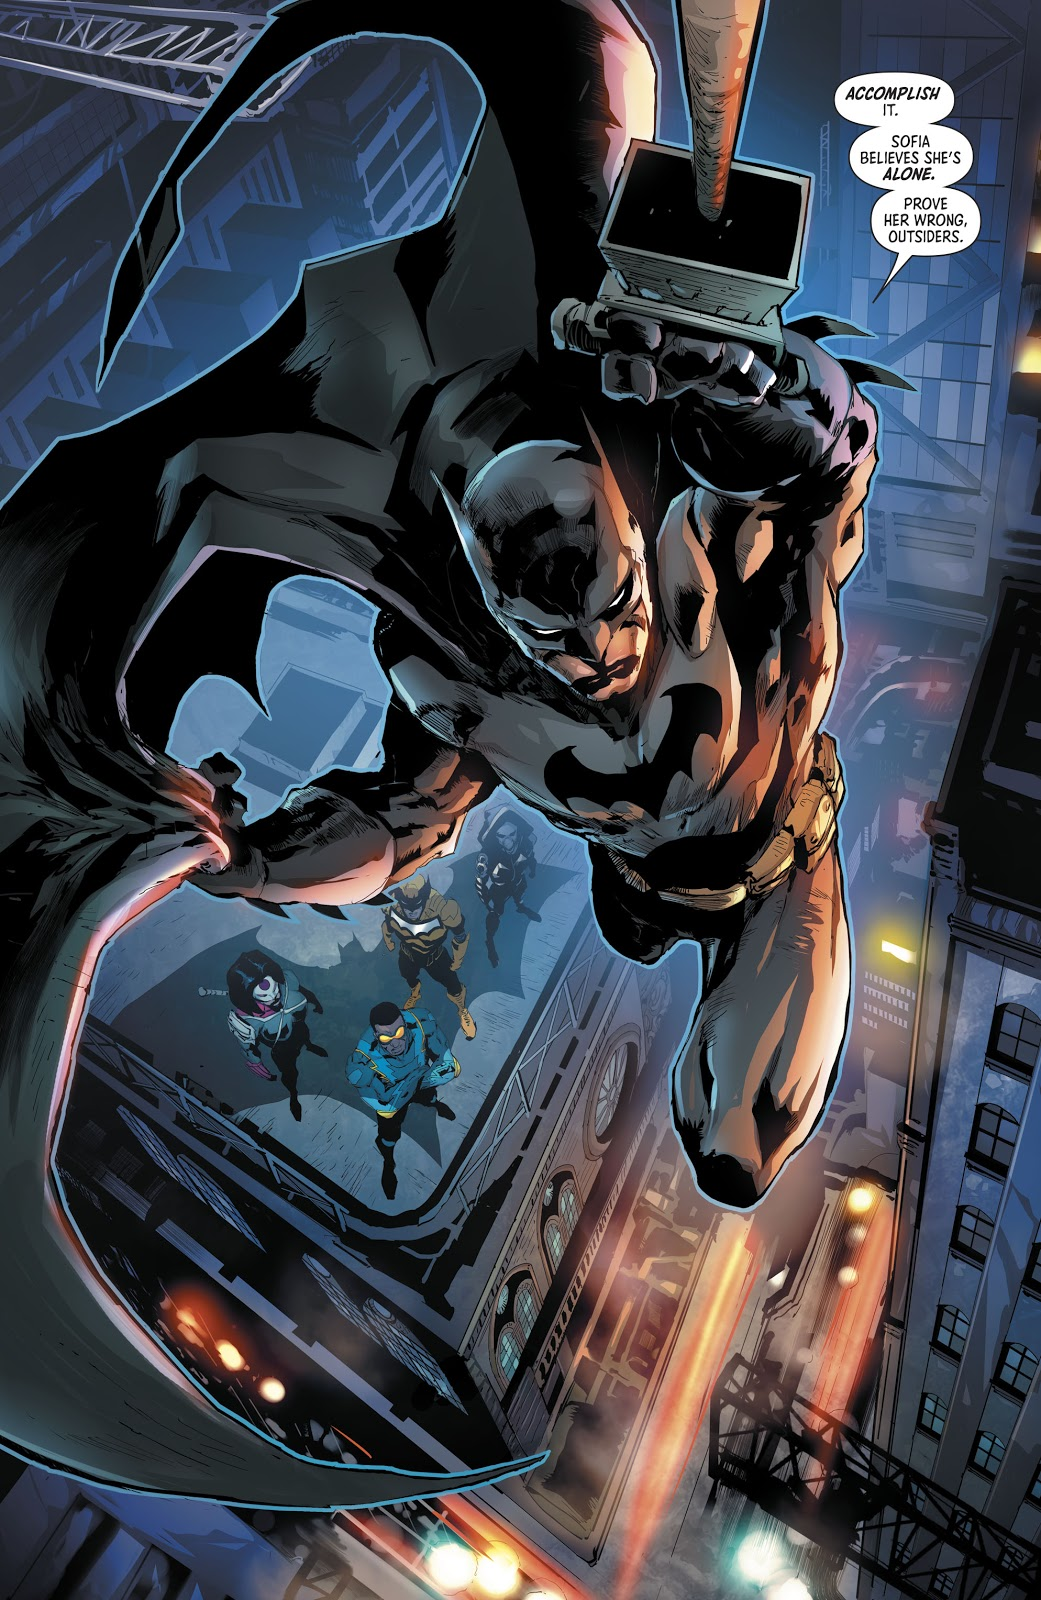 Batman And The Outsiders Vol. 3 #1